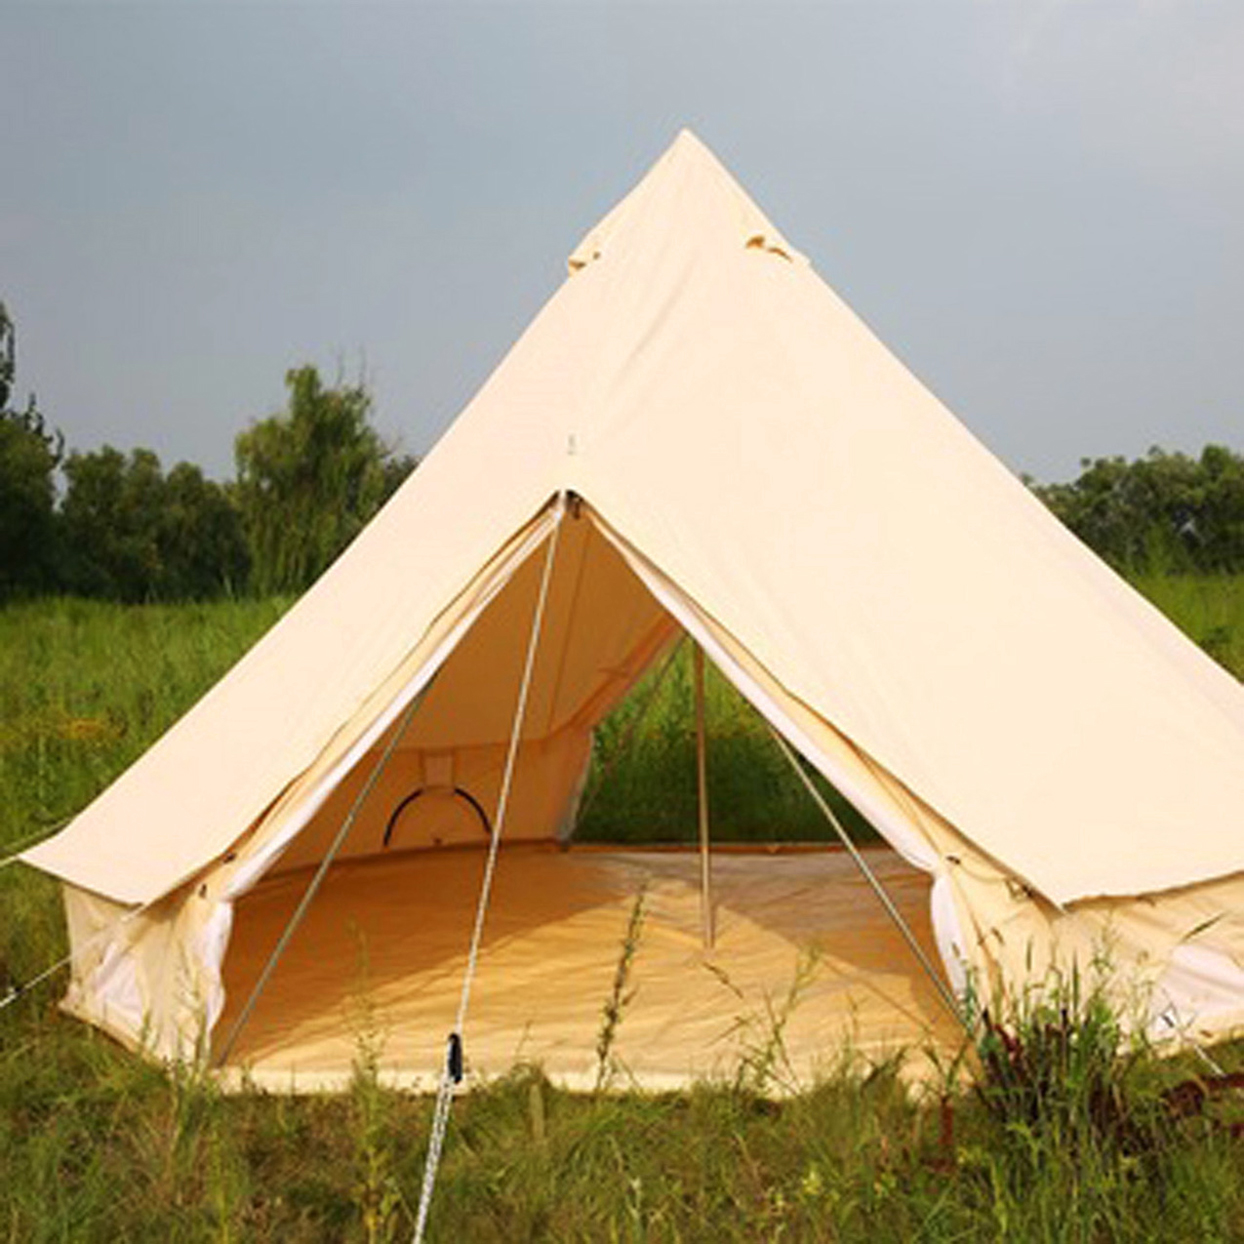 Ultimate Bell Tent Ultimate Bell Tent Suppliers and Manufacturers at Alibaba.com & Ultimate Bell Tent Ultimate Bell Tent Suppliers and Manufacturers ...